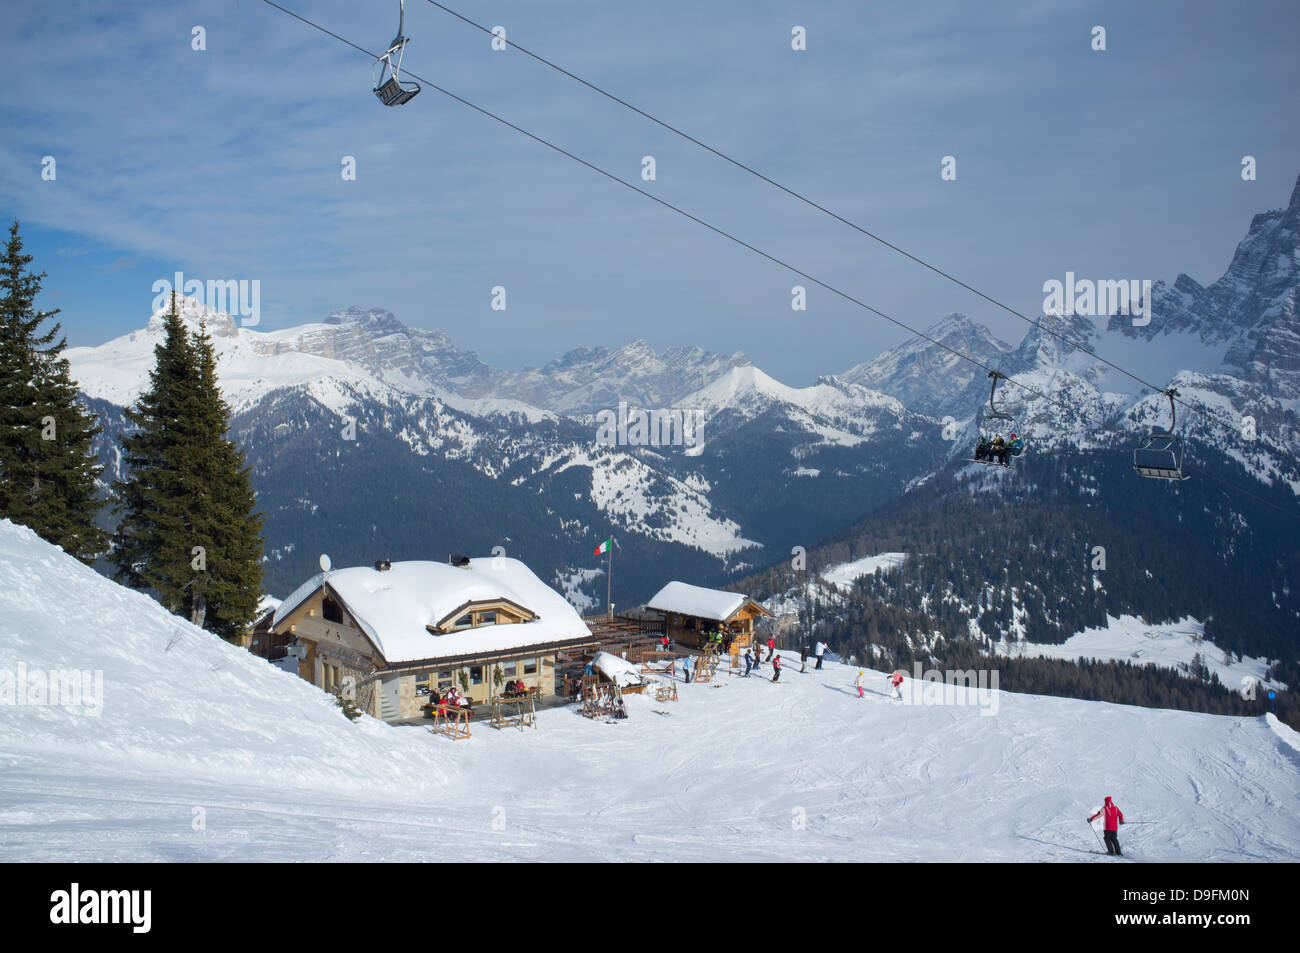 A mountain restaurant at the Civetta ski resort in the Dolomites, South Tyrol, Italy Stock Photo